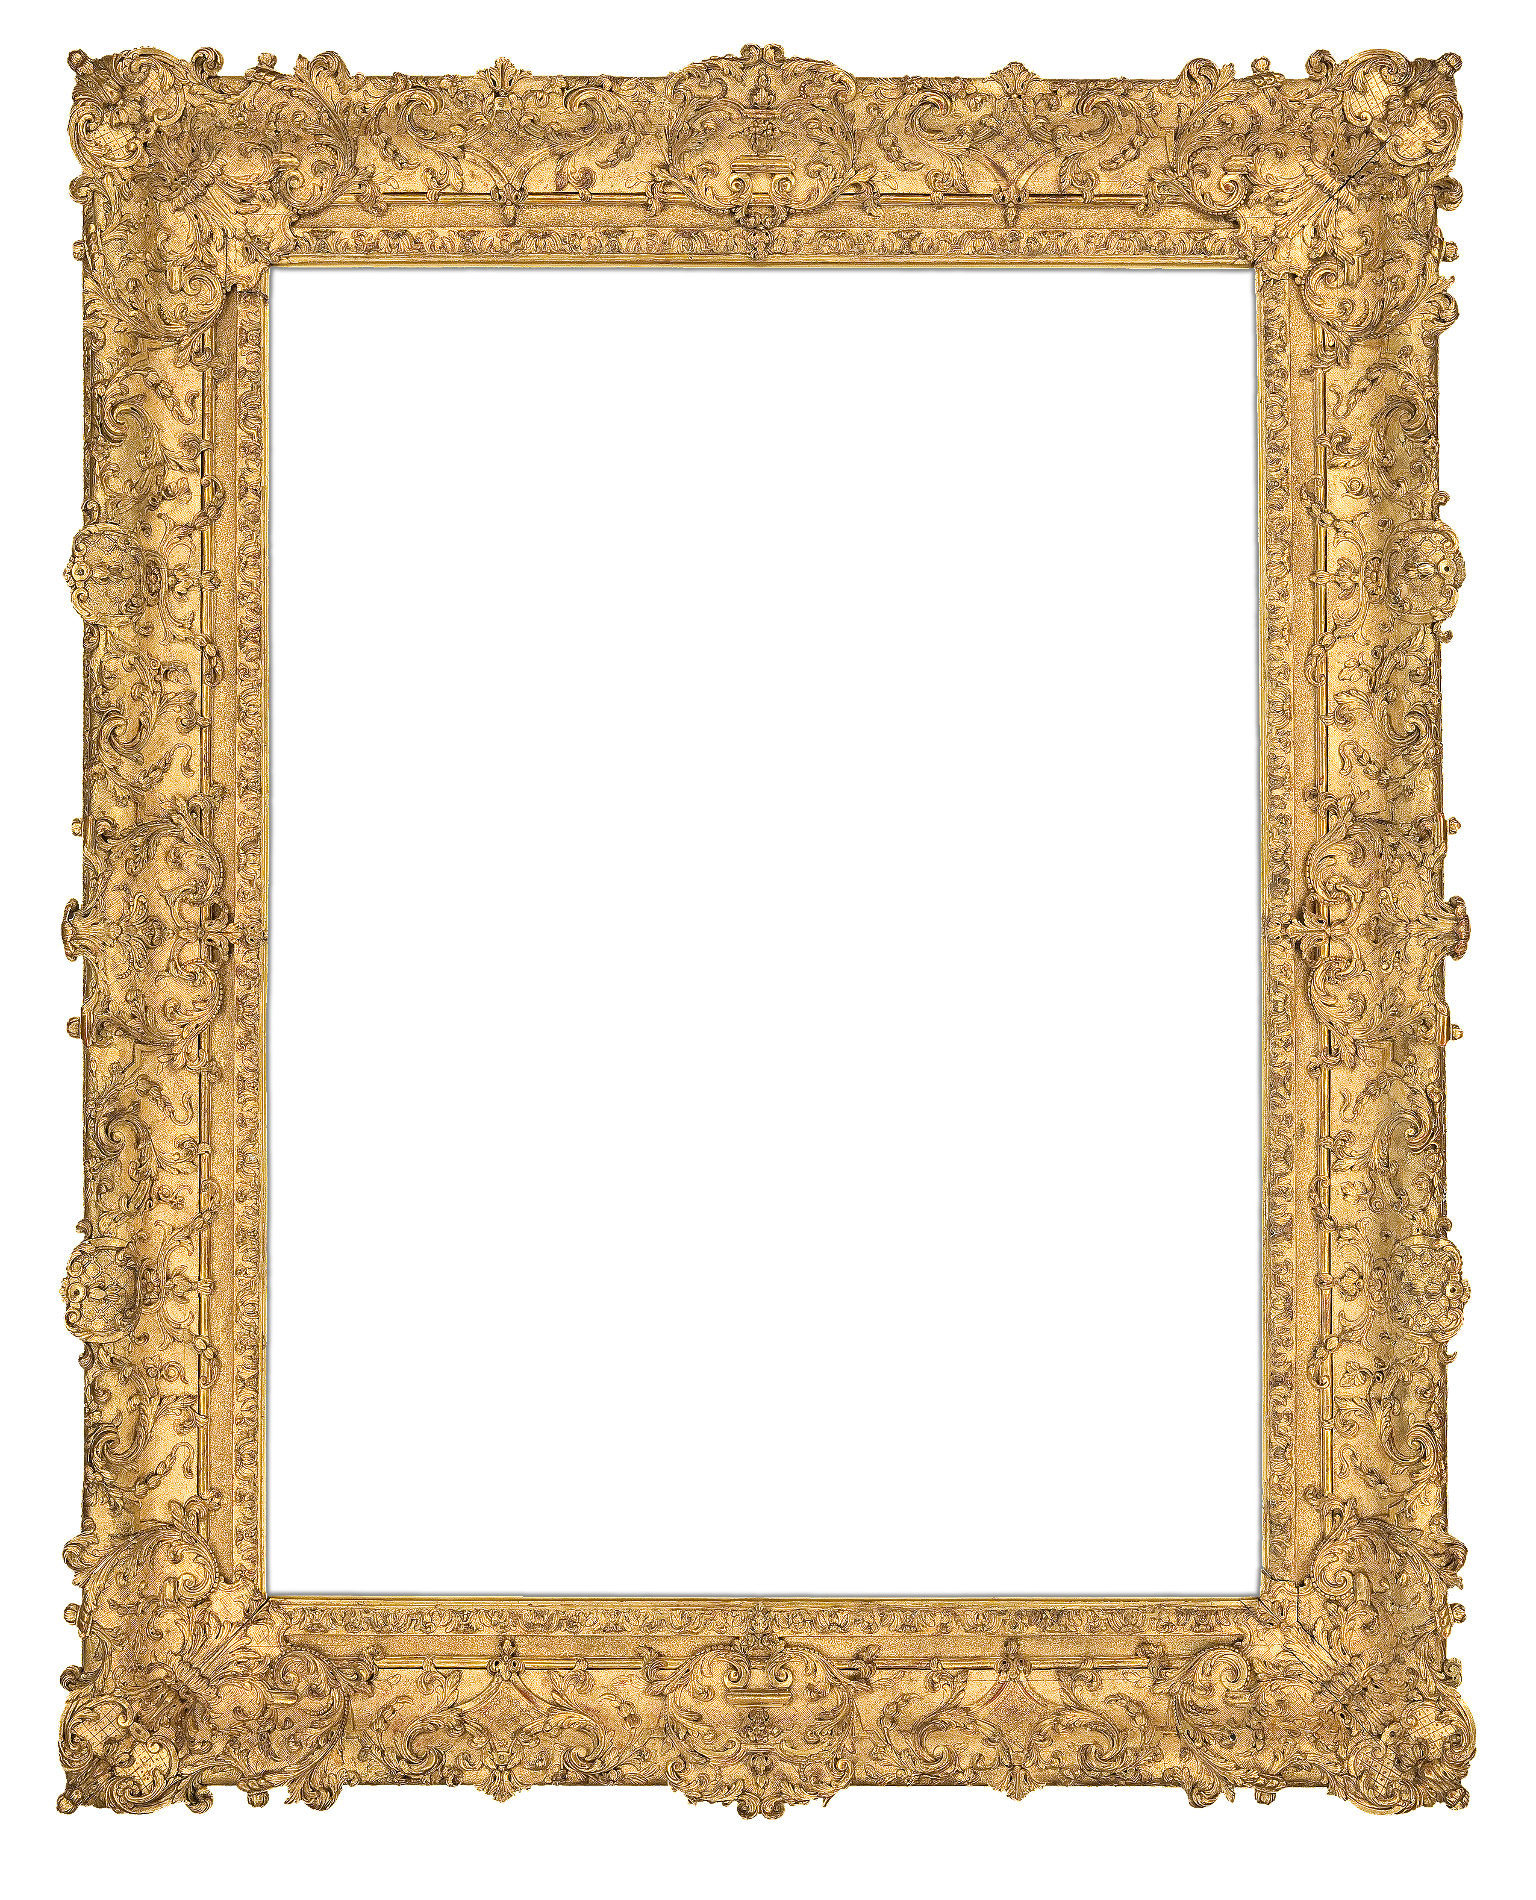 one of lowys many spectacular gold frames